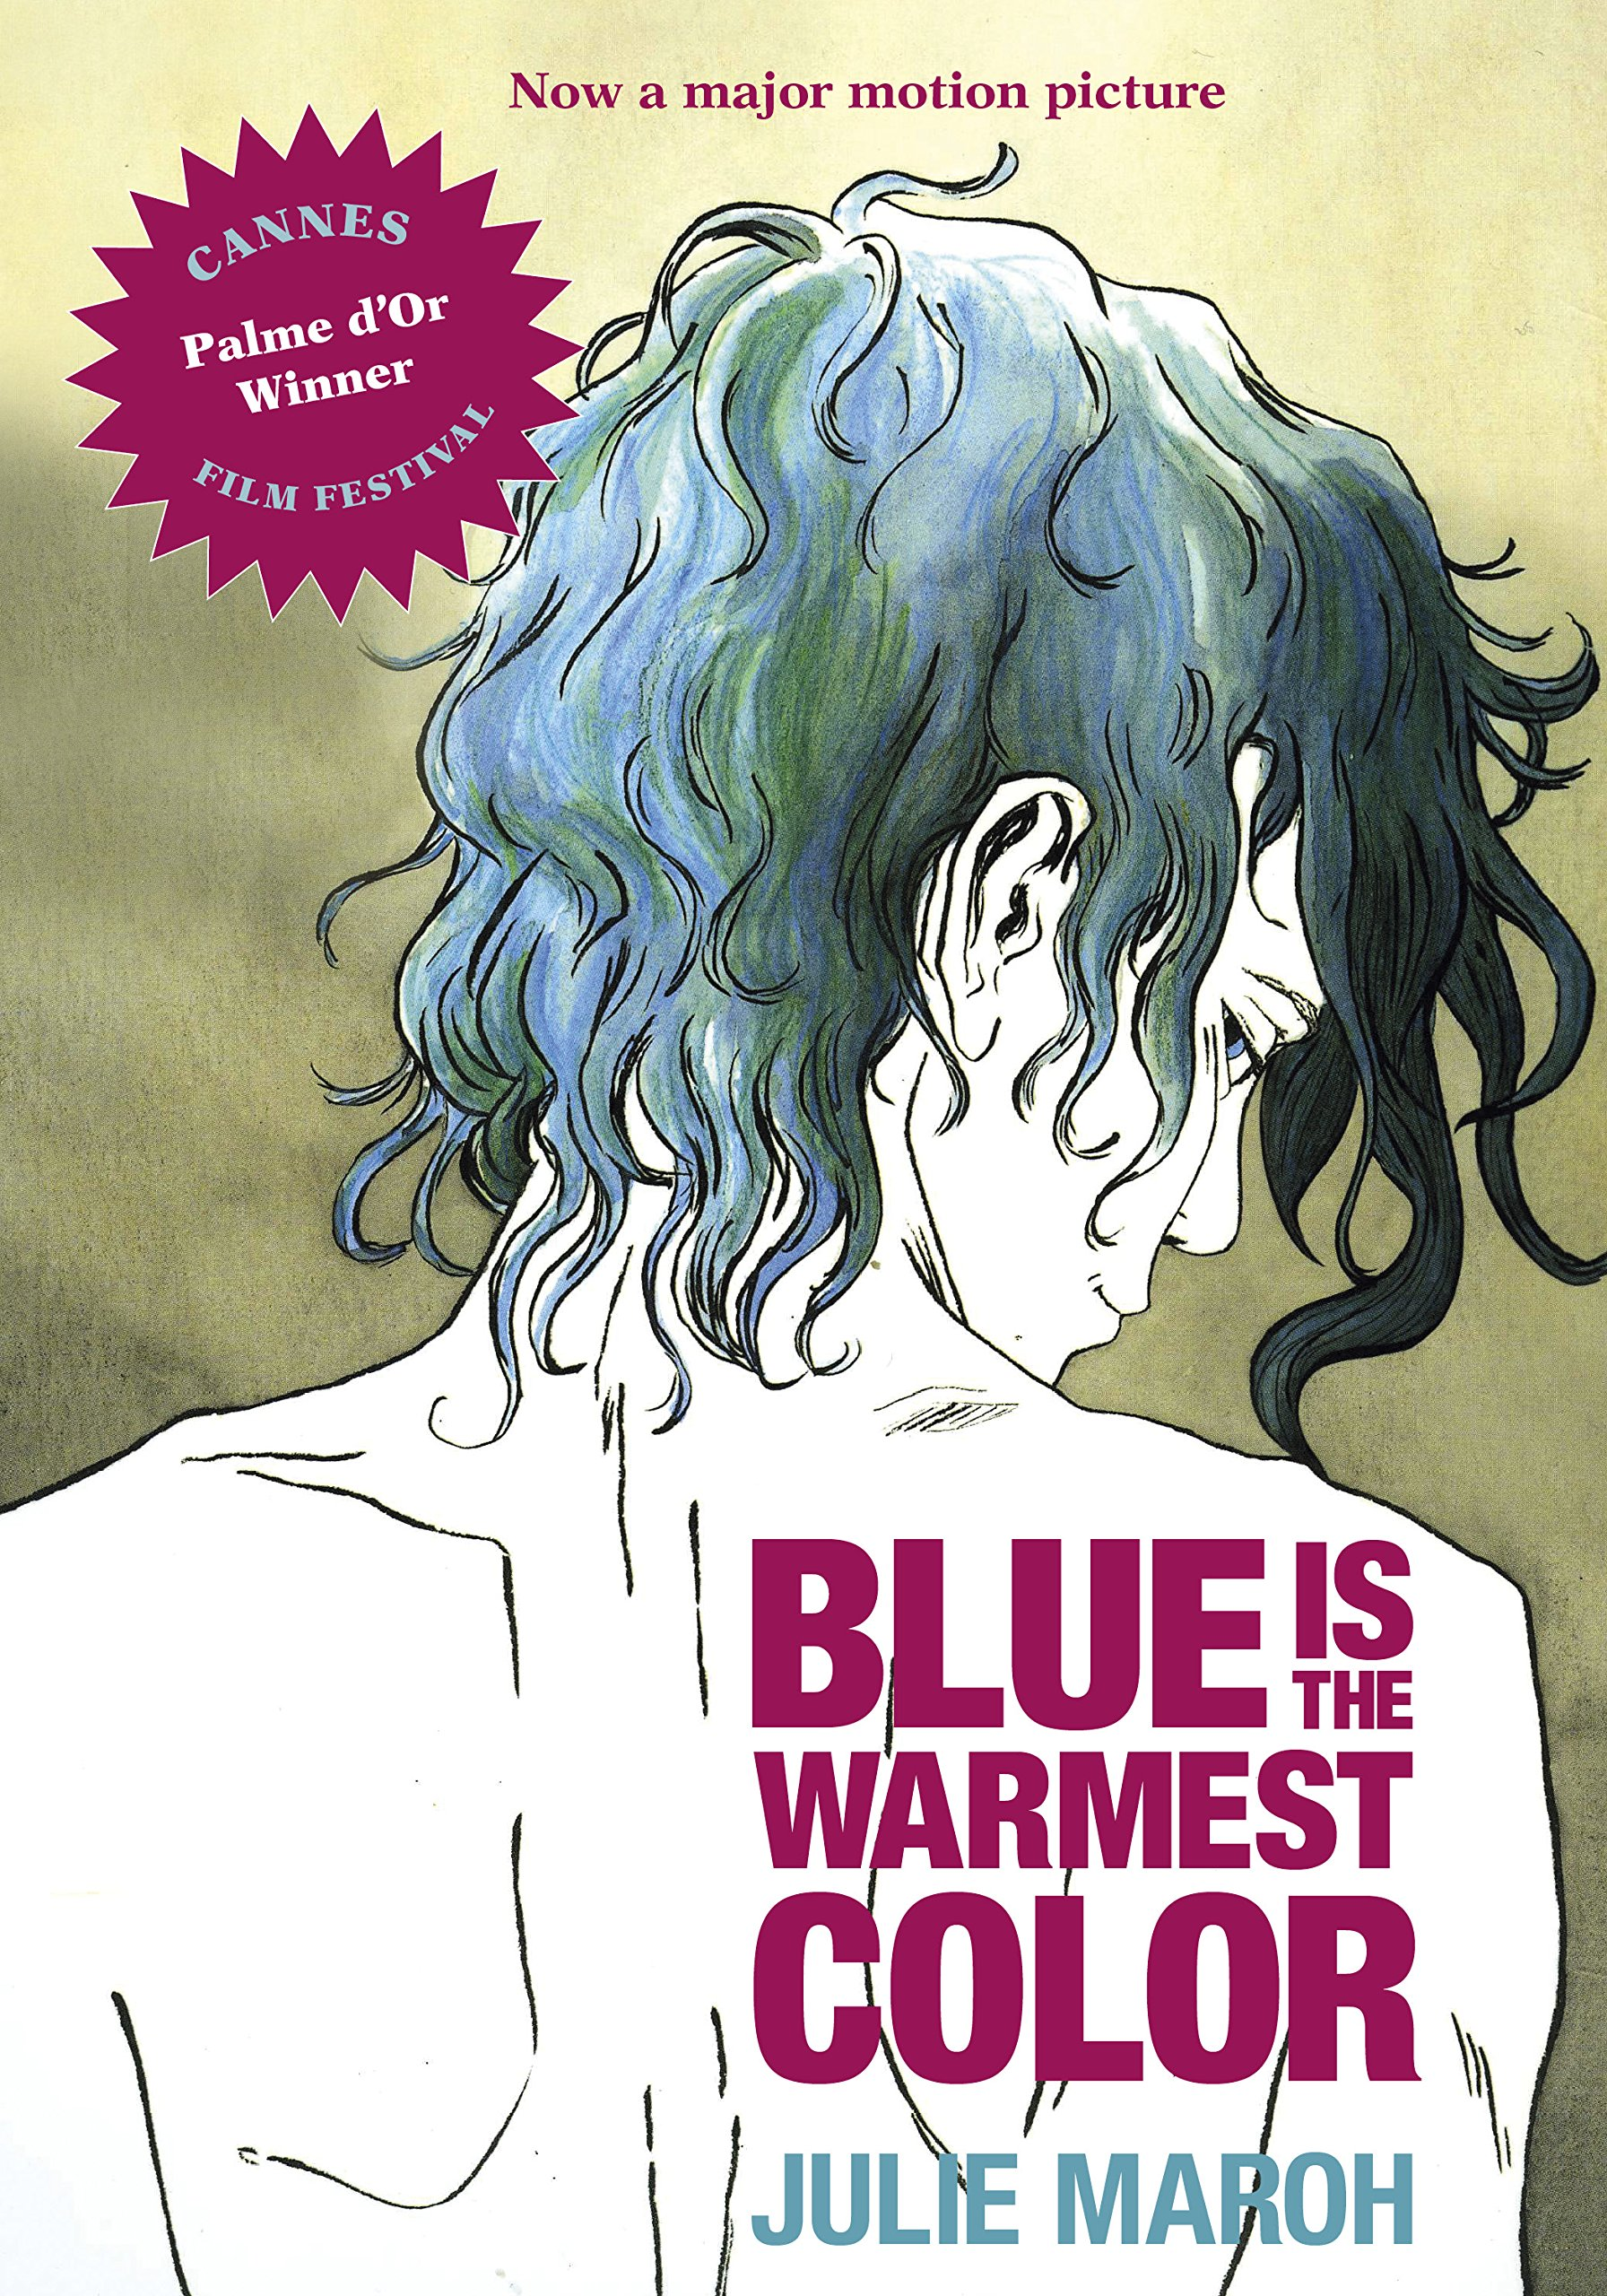 Blue Is The Warmest Color: Amazon.es: Julie Maroh: Libros en idiomas extranjeros